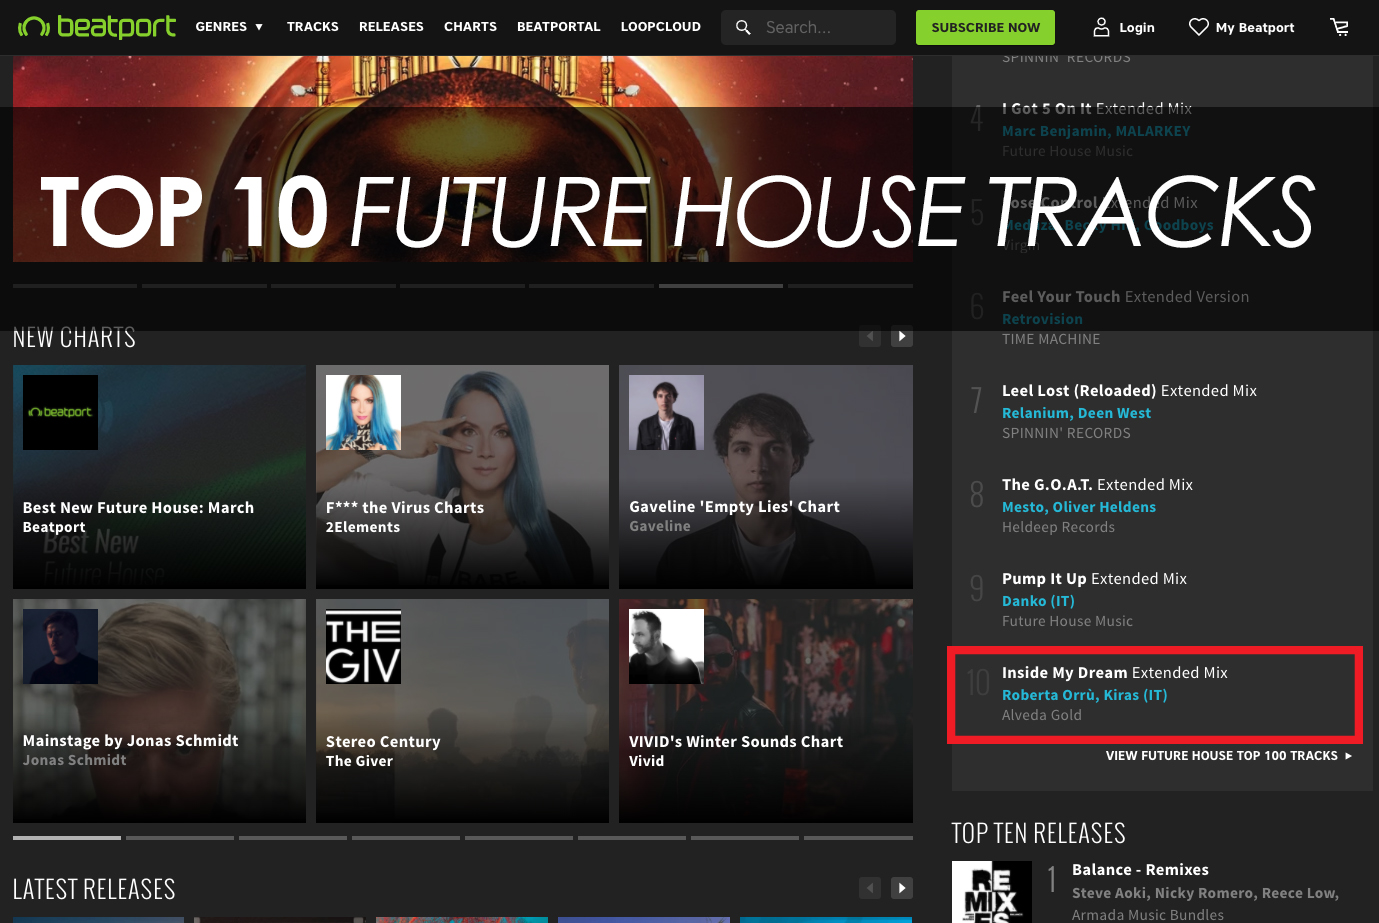 """Inside My Dream"" by Kiras is Top 10 on Beatport Future House tracks!"